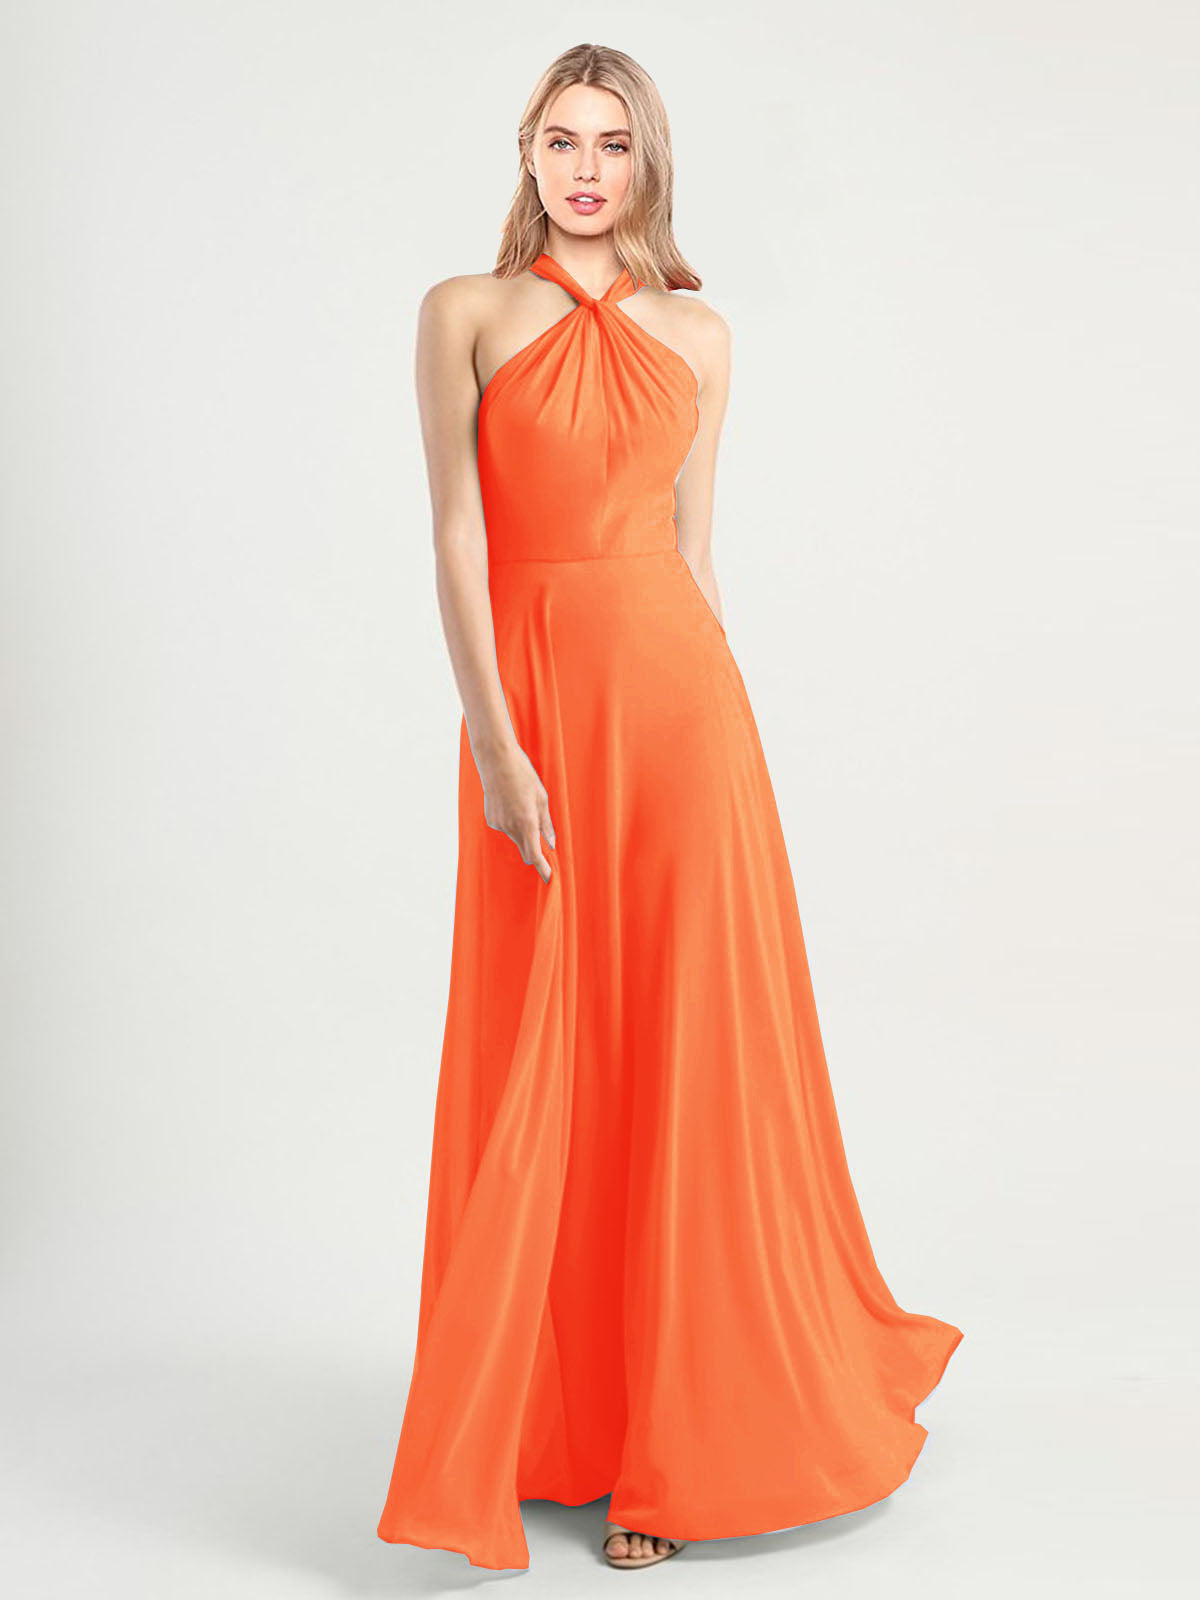 Long A-Line High Neck, Halter Sleeveless Tangerine Tango Chiffon Bridesmaid Dress Yoli